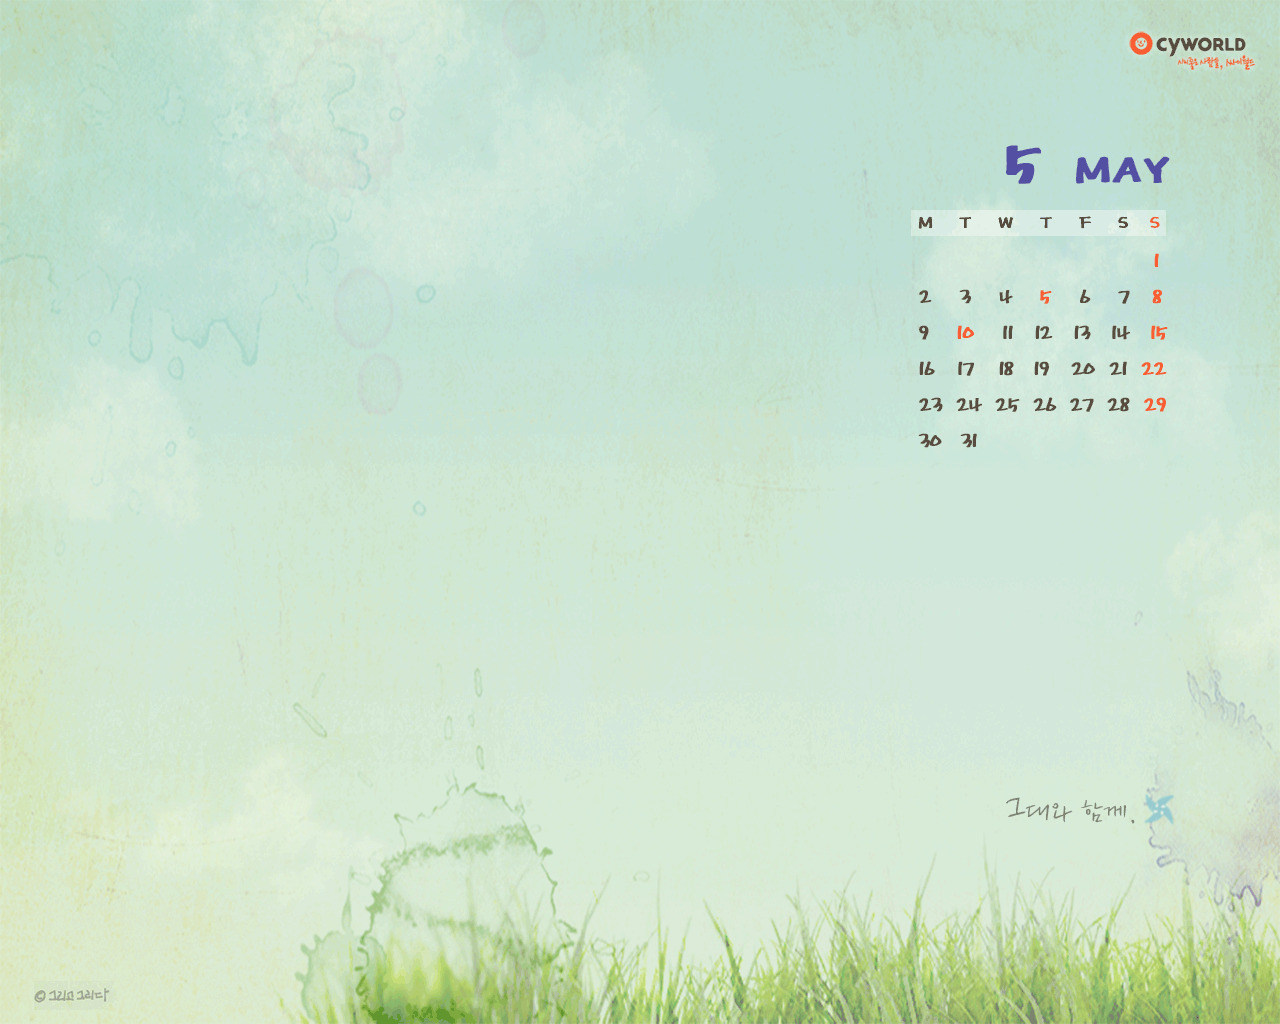 In January Calendar Wallpaper 29617